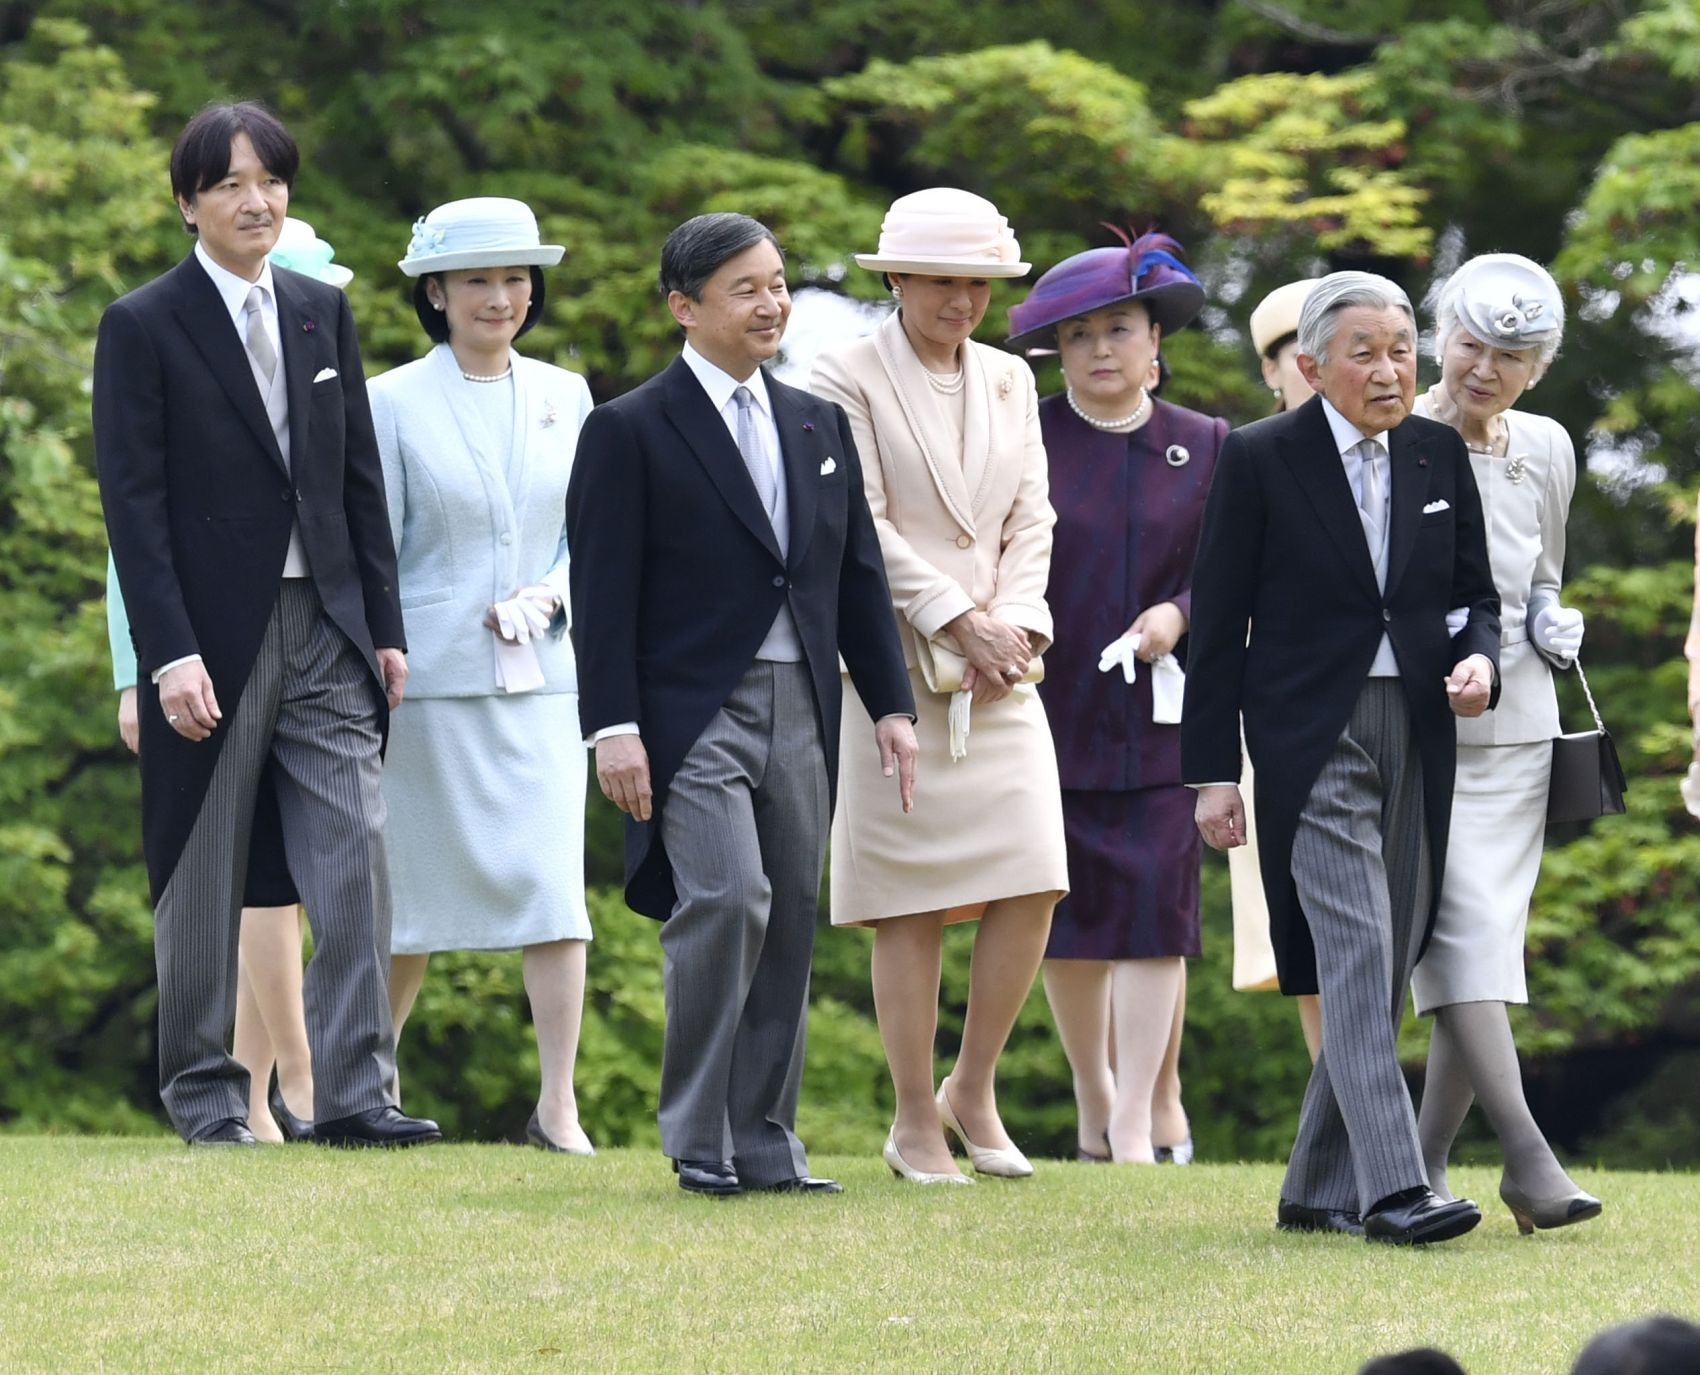 Japan's Prince Akishino Speaks for the First Time About the Postponement of Princess Mako's Nuptials